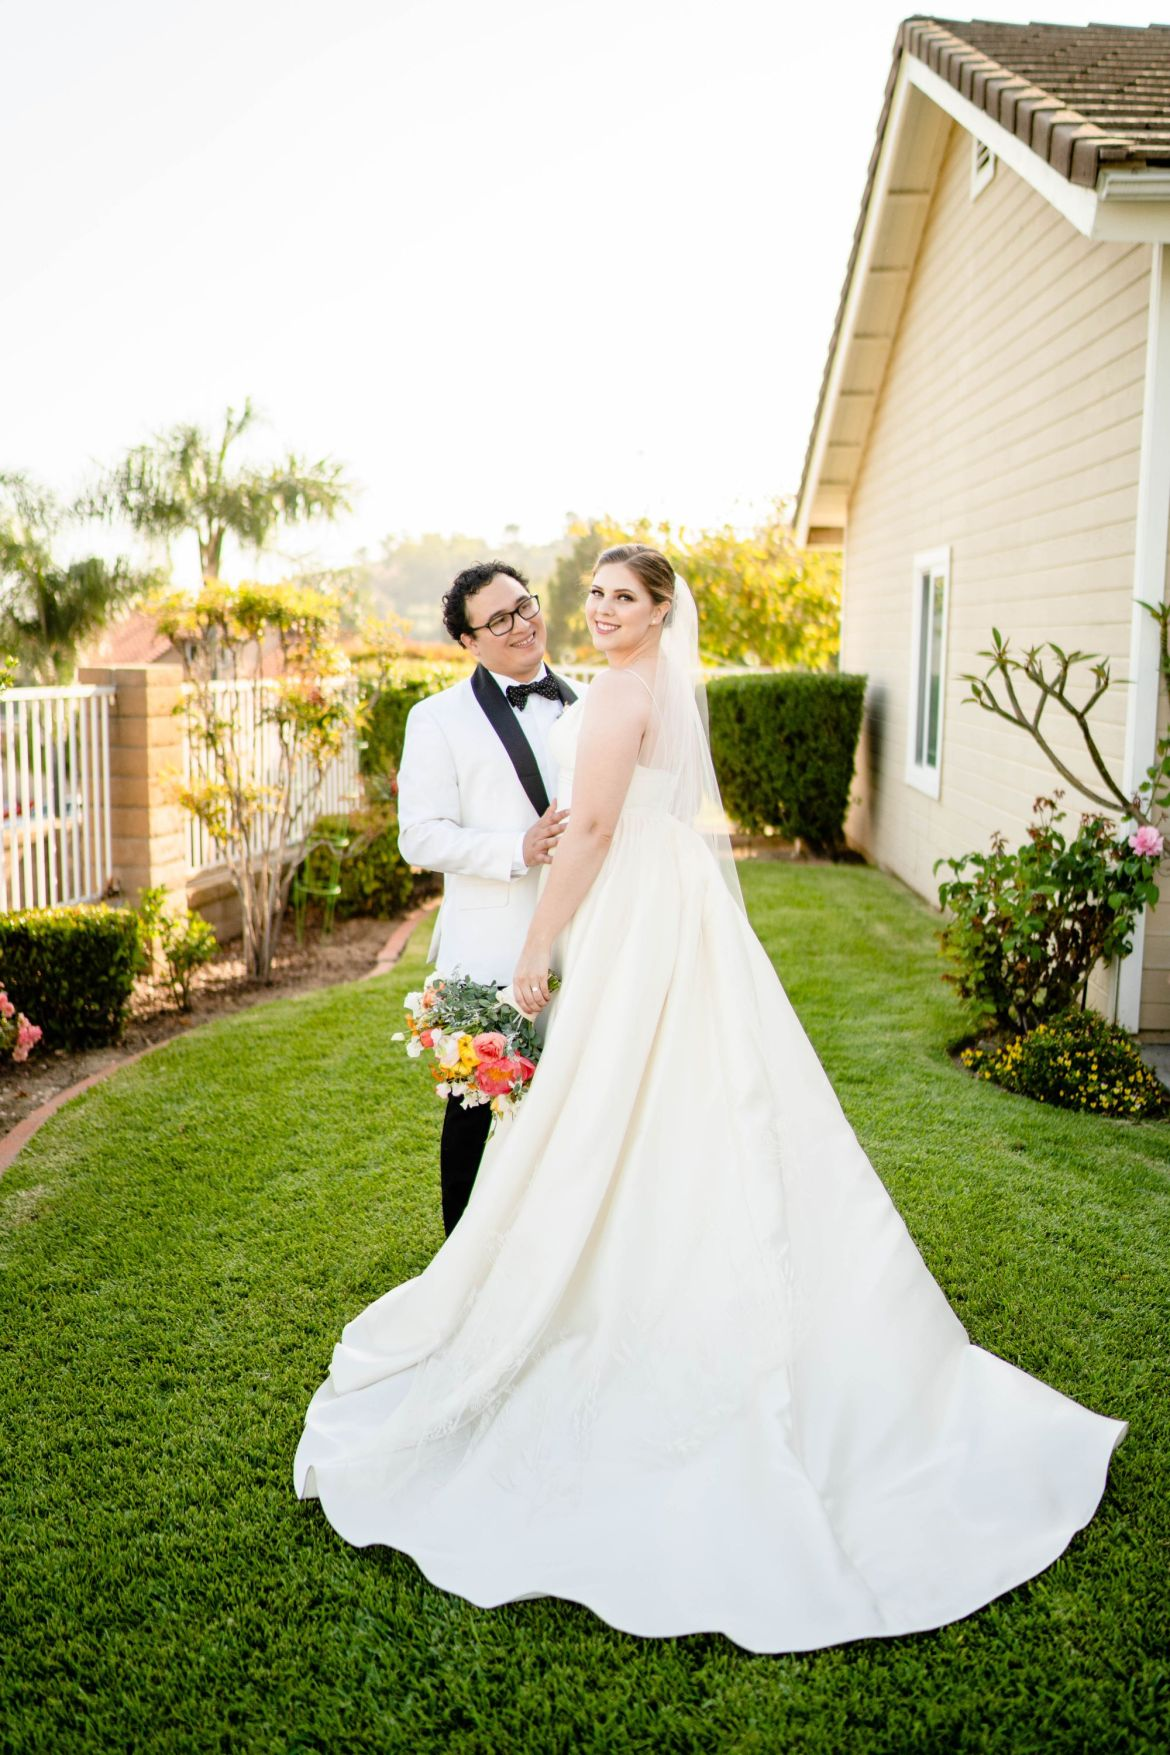 backyard wedding photo ideas